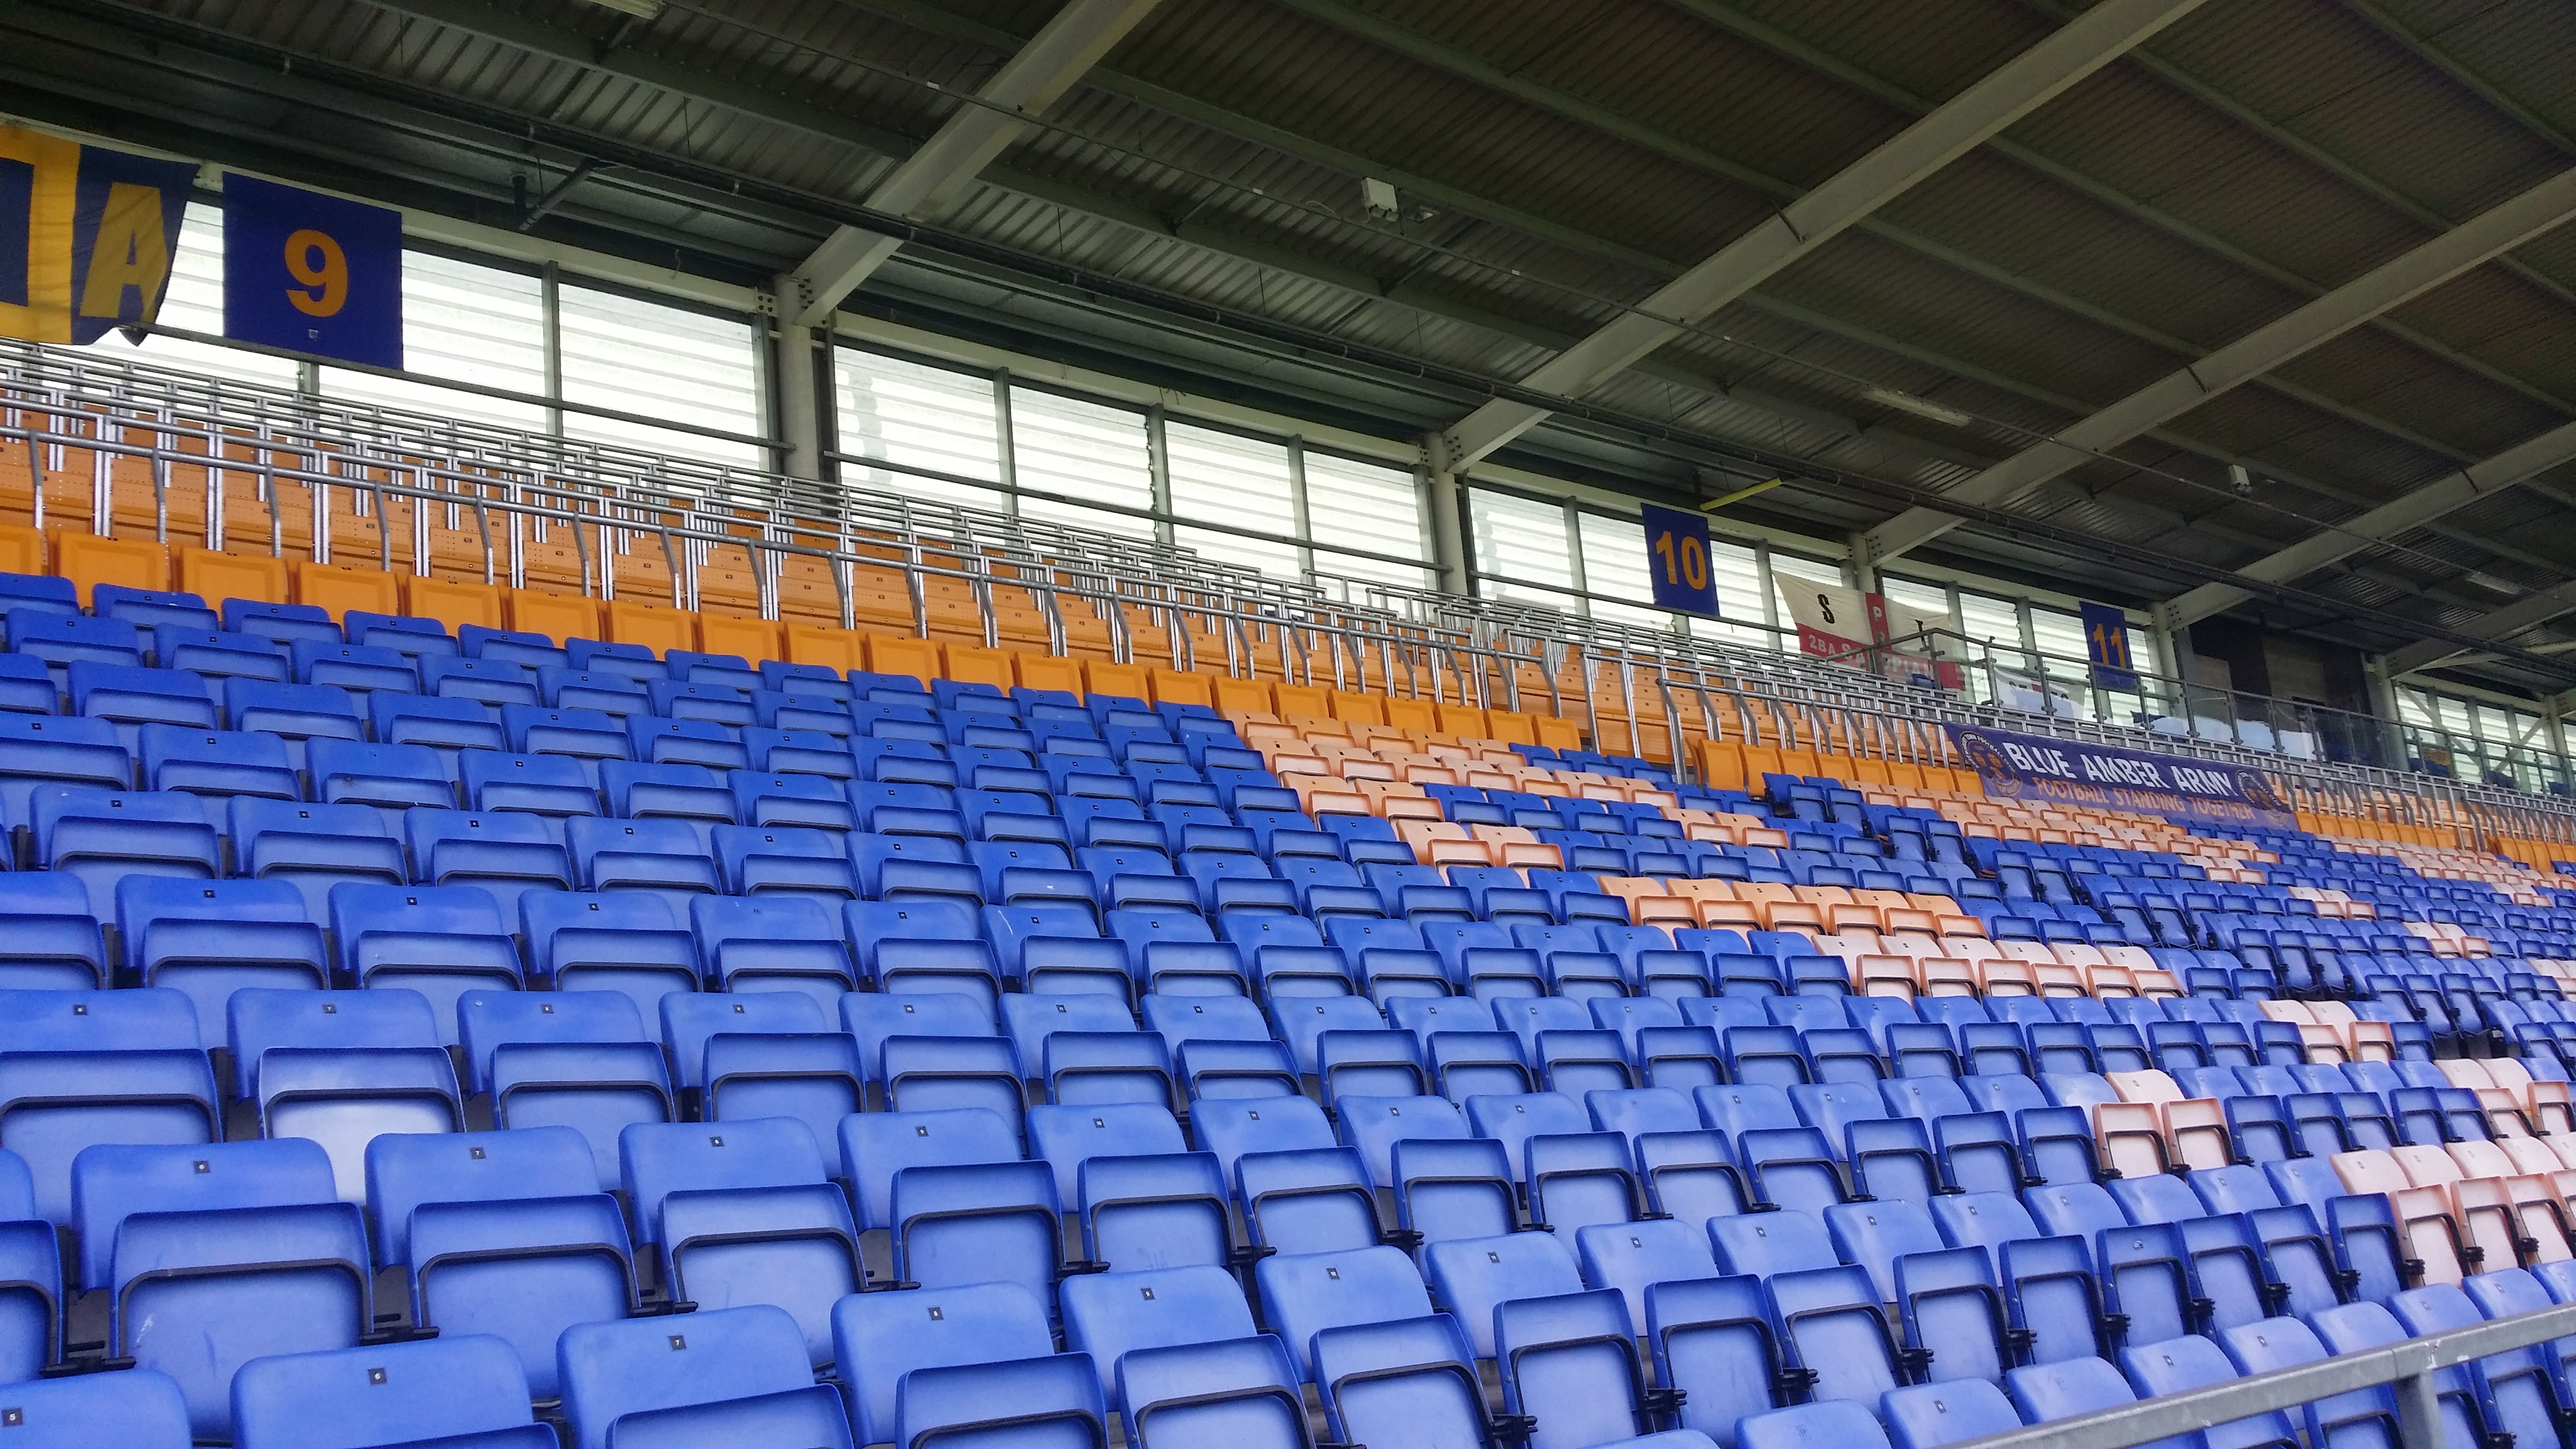 Mitre supporting safe standing through training